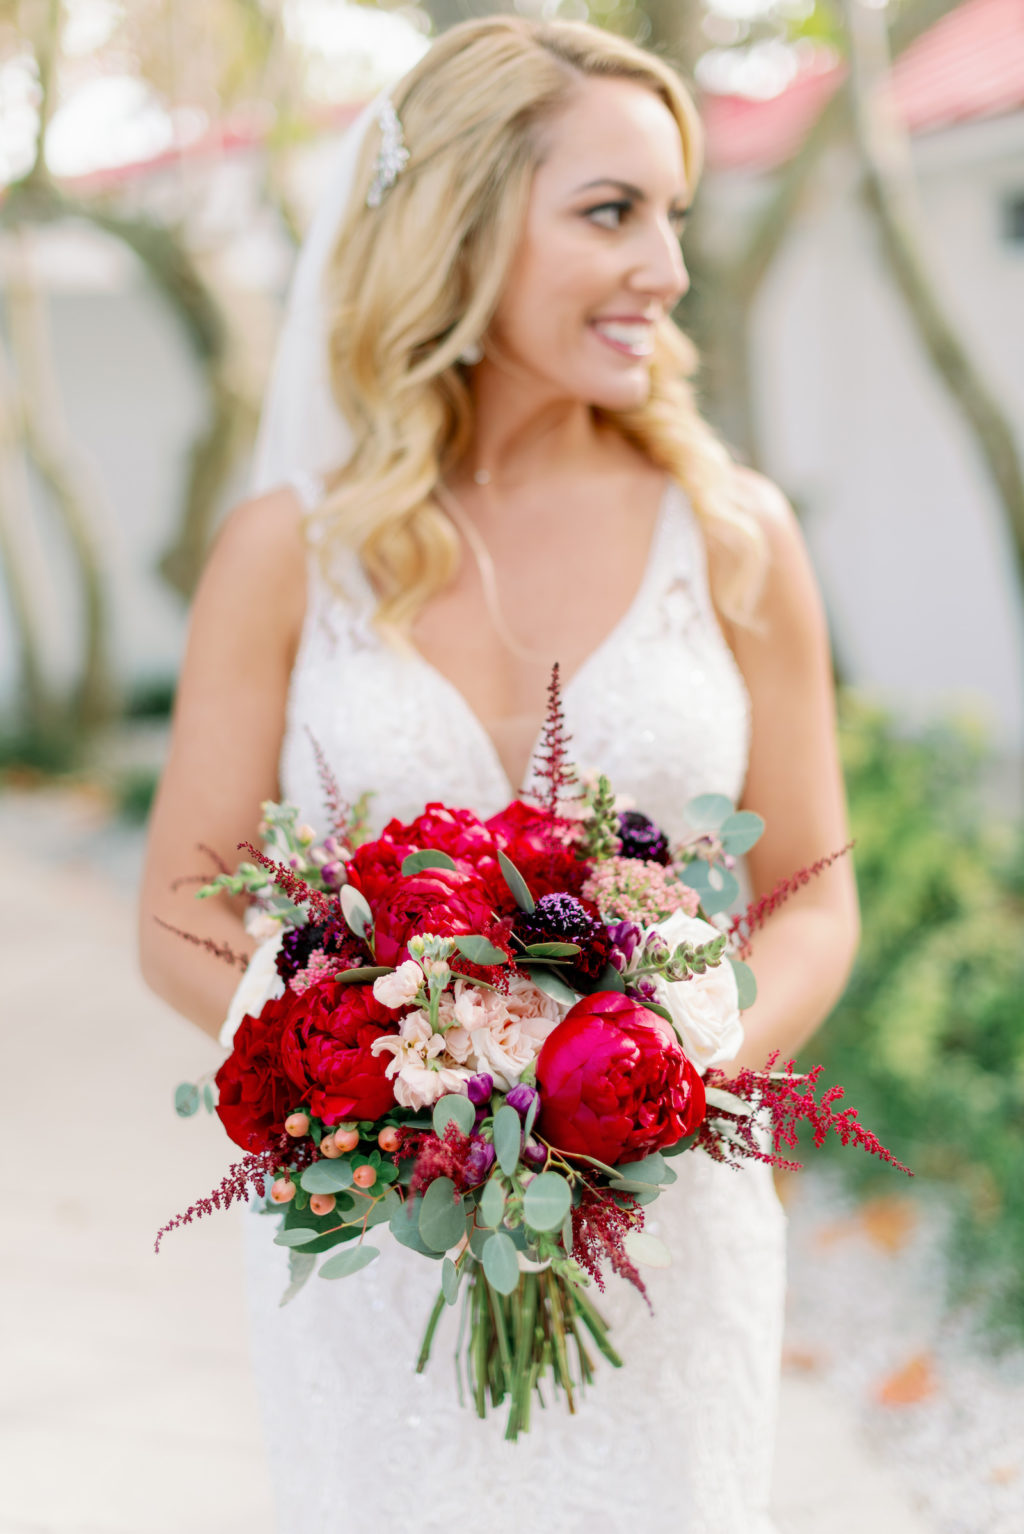 Florida Bride in Lace Wedding Dress Holding Bright Colorful Red, Ivory and Greenery Eucalyptus Floral Bouquet   Tampa Bay Wedding Hair and Makeup Michele Renee the Studio